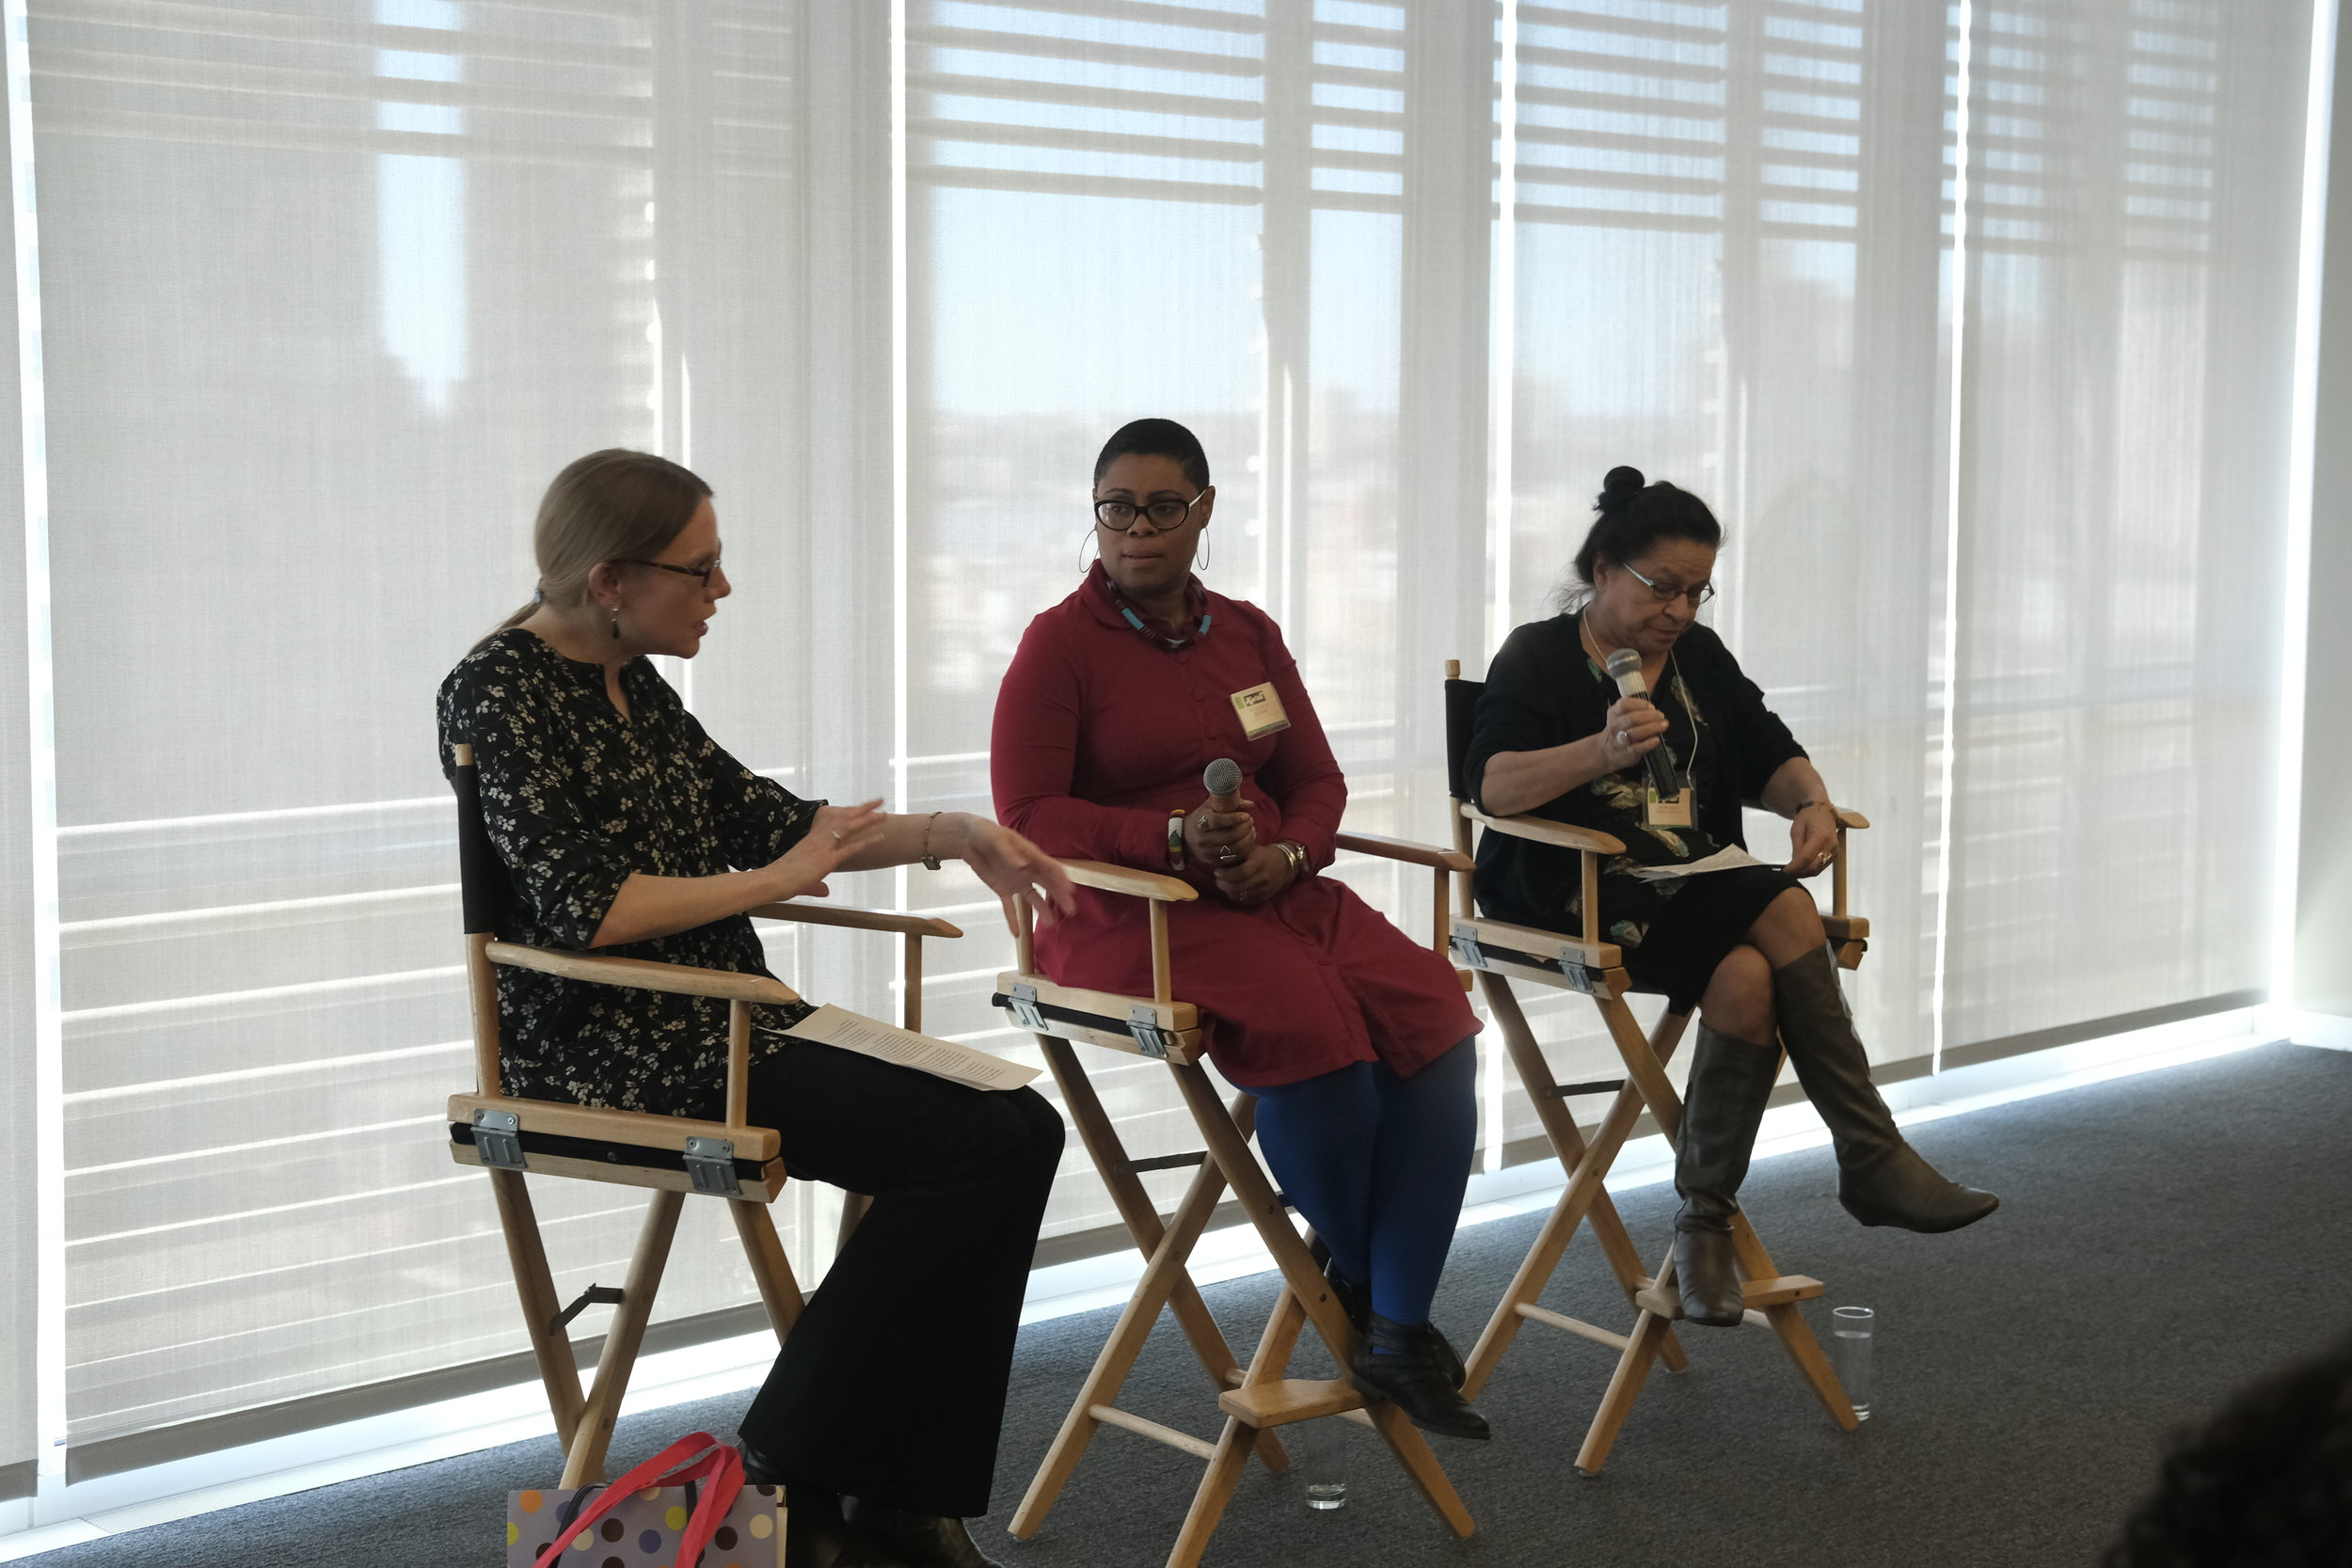 Cheryl Klein, Editorial Director at Lee & Low Books, Ibi Zoboi, author of American Street and Marcie Rendon, author of Murder on the Red River